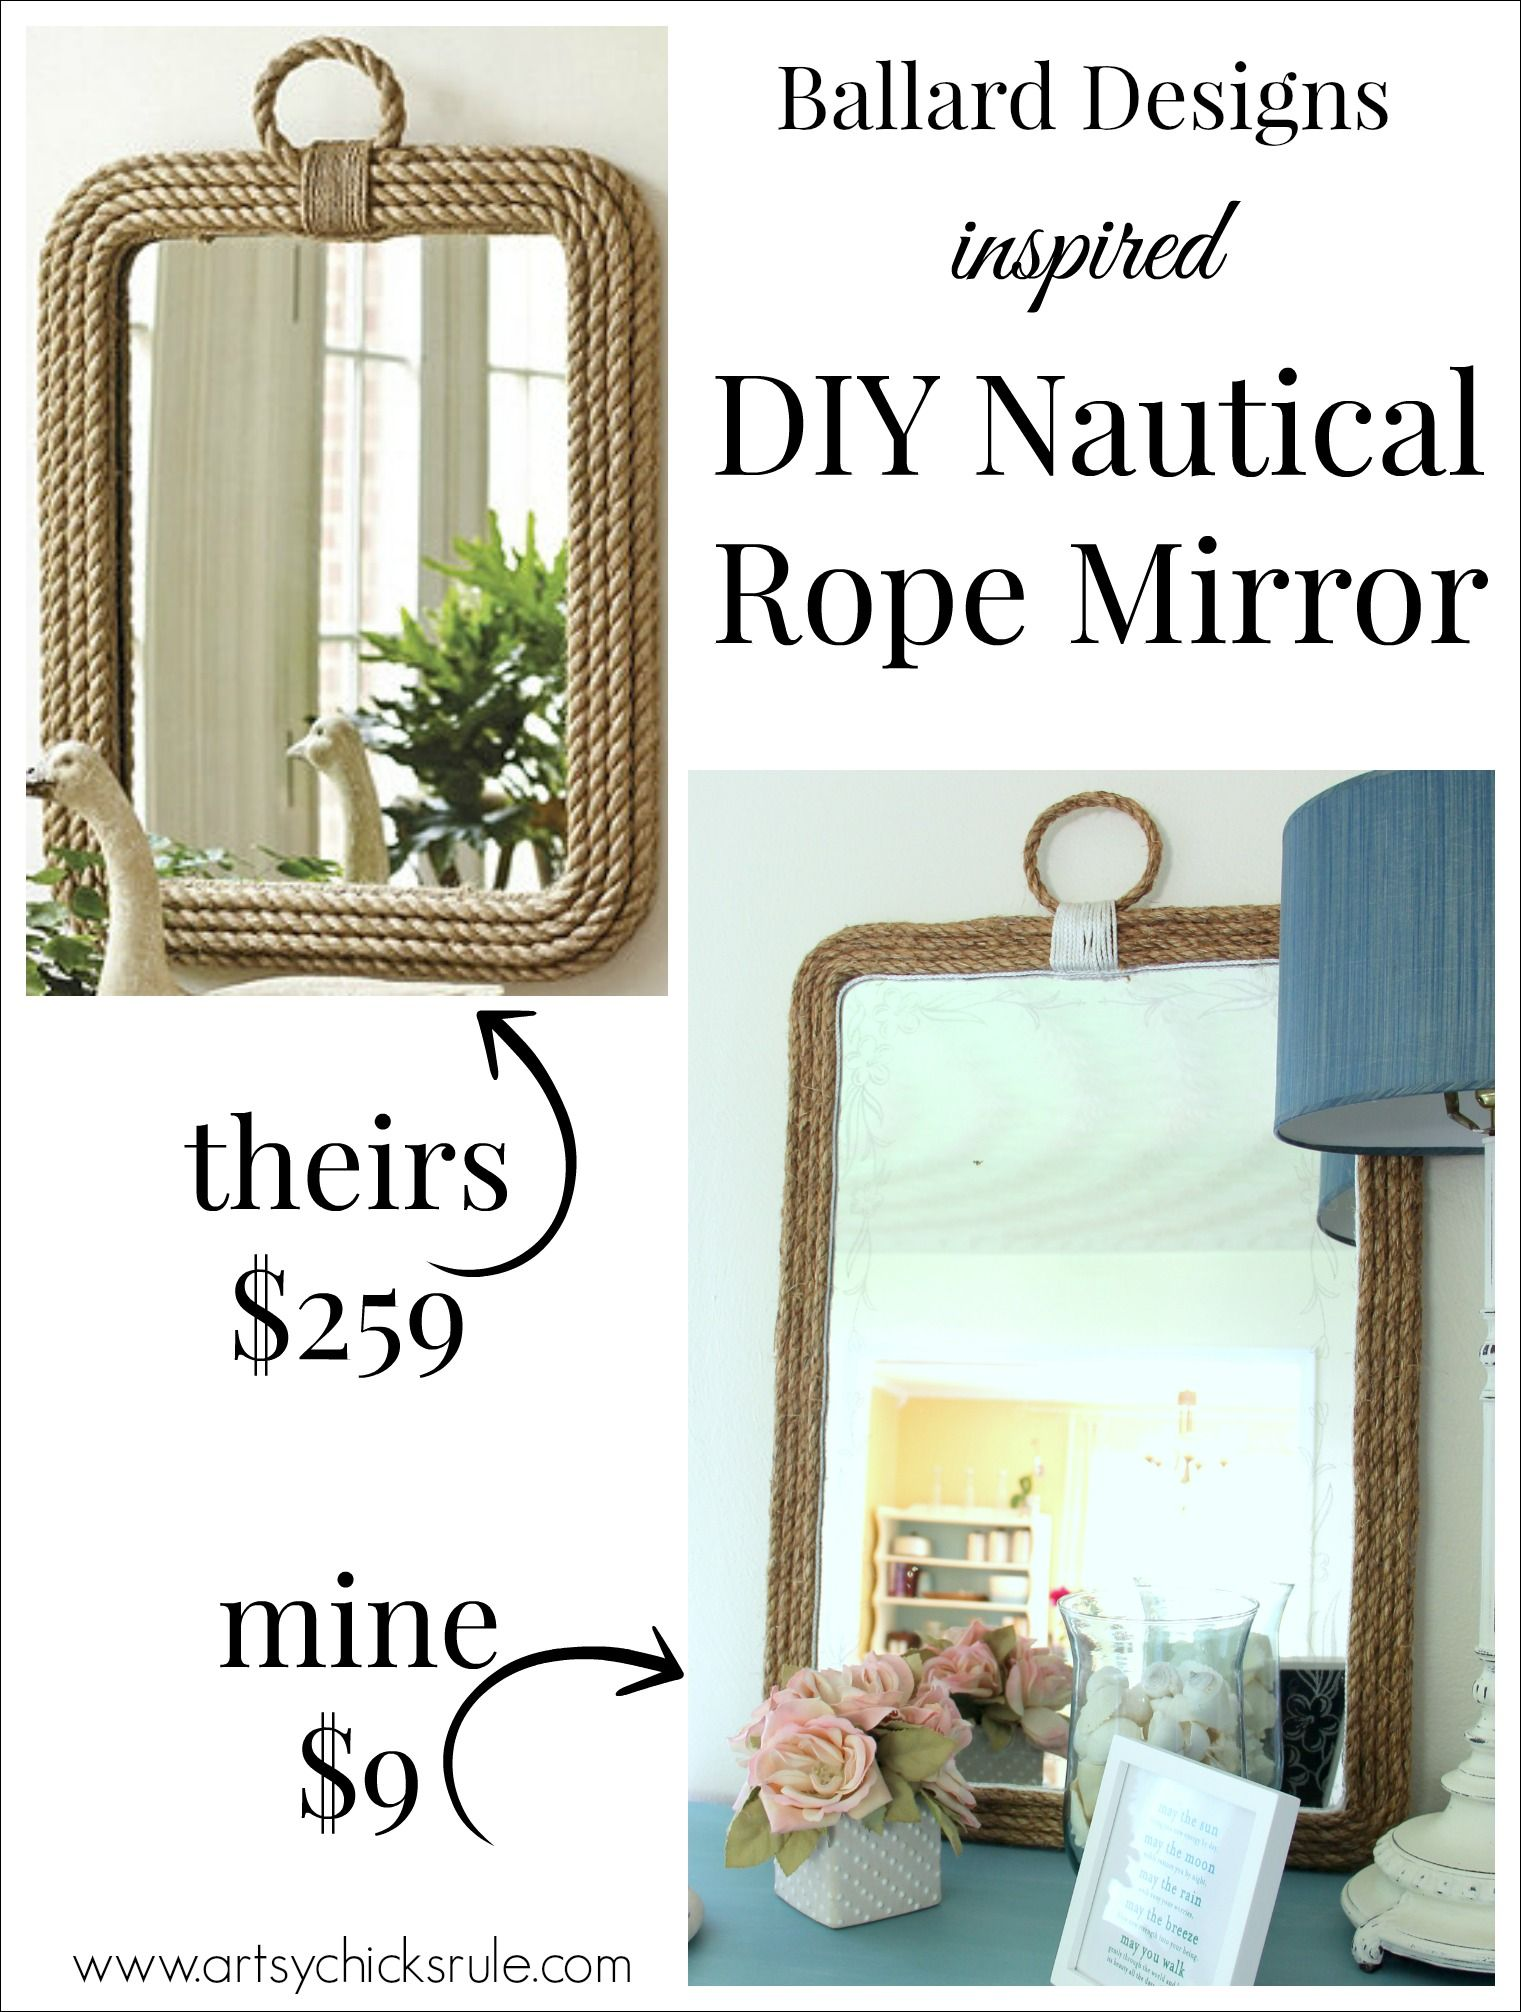 Diy Nautical Rope Mirror Nautical Diy Rope Mirror Nautical Rope Mirror